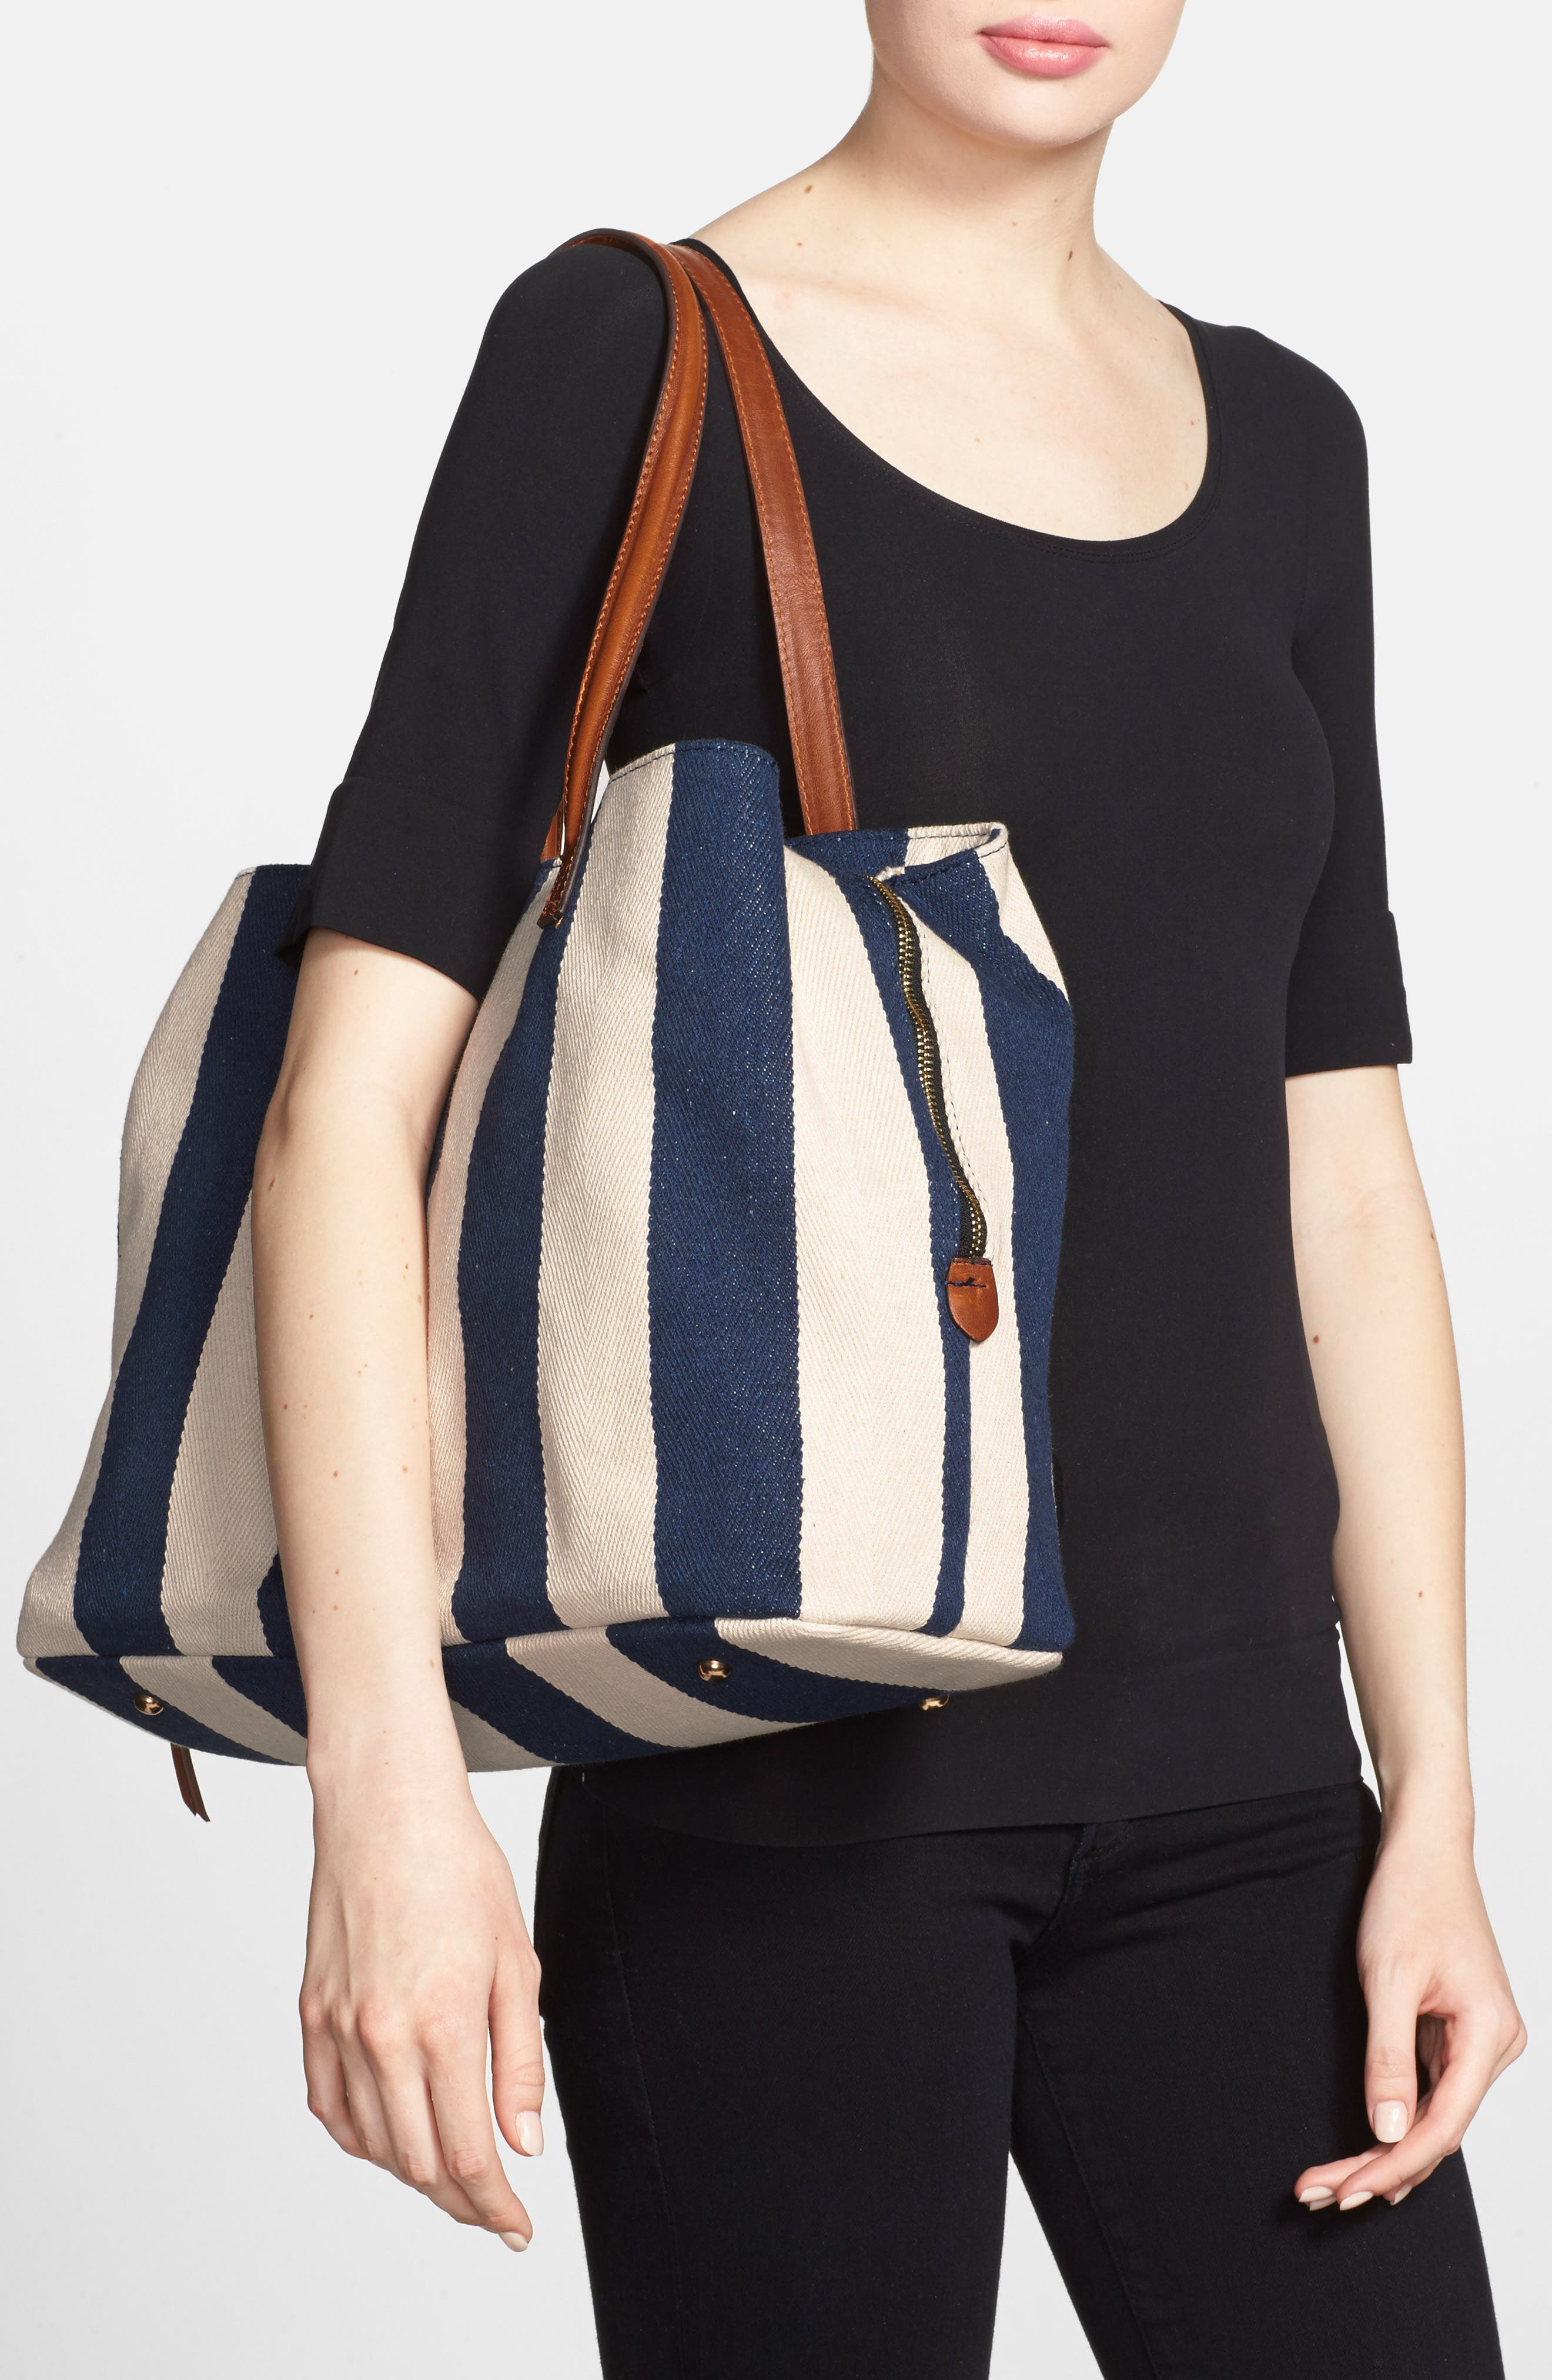 SOLE SOCIETY,                             'Oversize Millie' Stripe Print Tote,                             Alternate thumbnail 2, color,                             NAVY CREAM